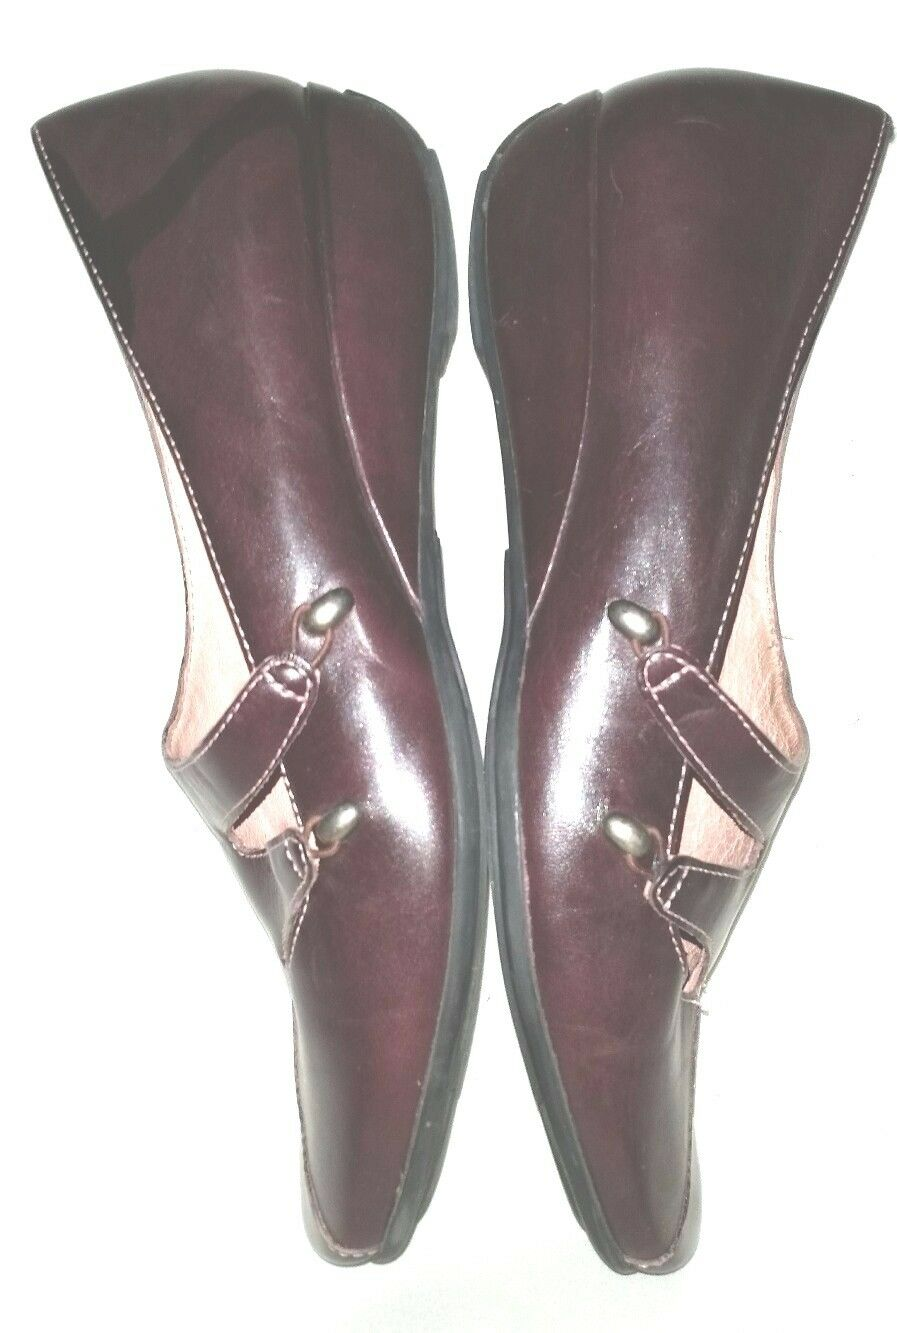 Fantastic Wine Heel CLARKS ARTISAN Size 9M Slip-On Low Wedge Heel Wine Shoes Leather Uppr 2c960f